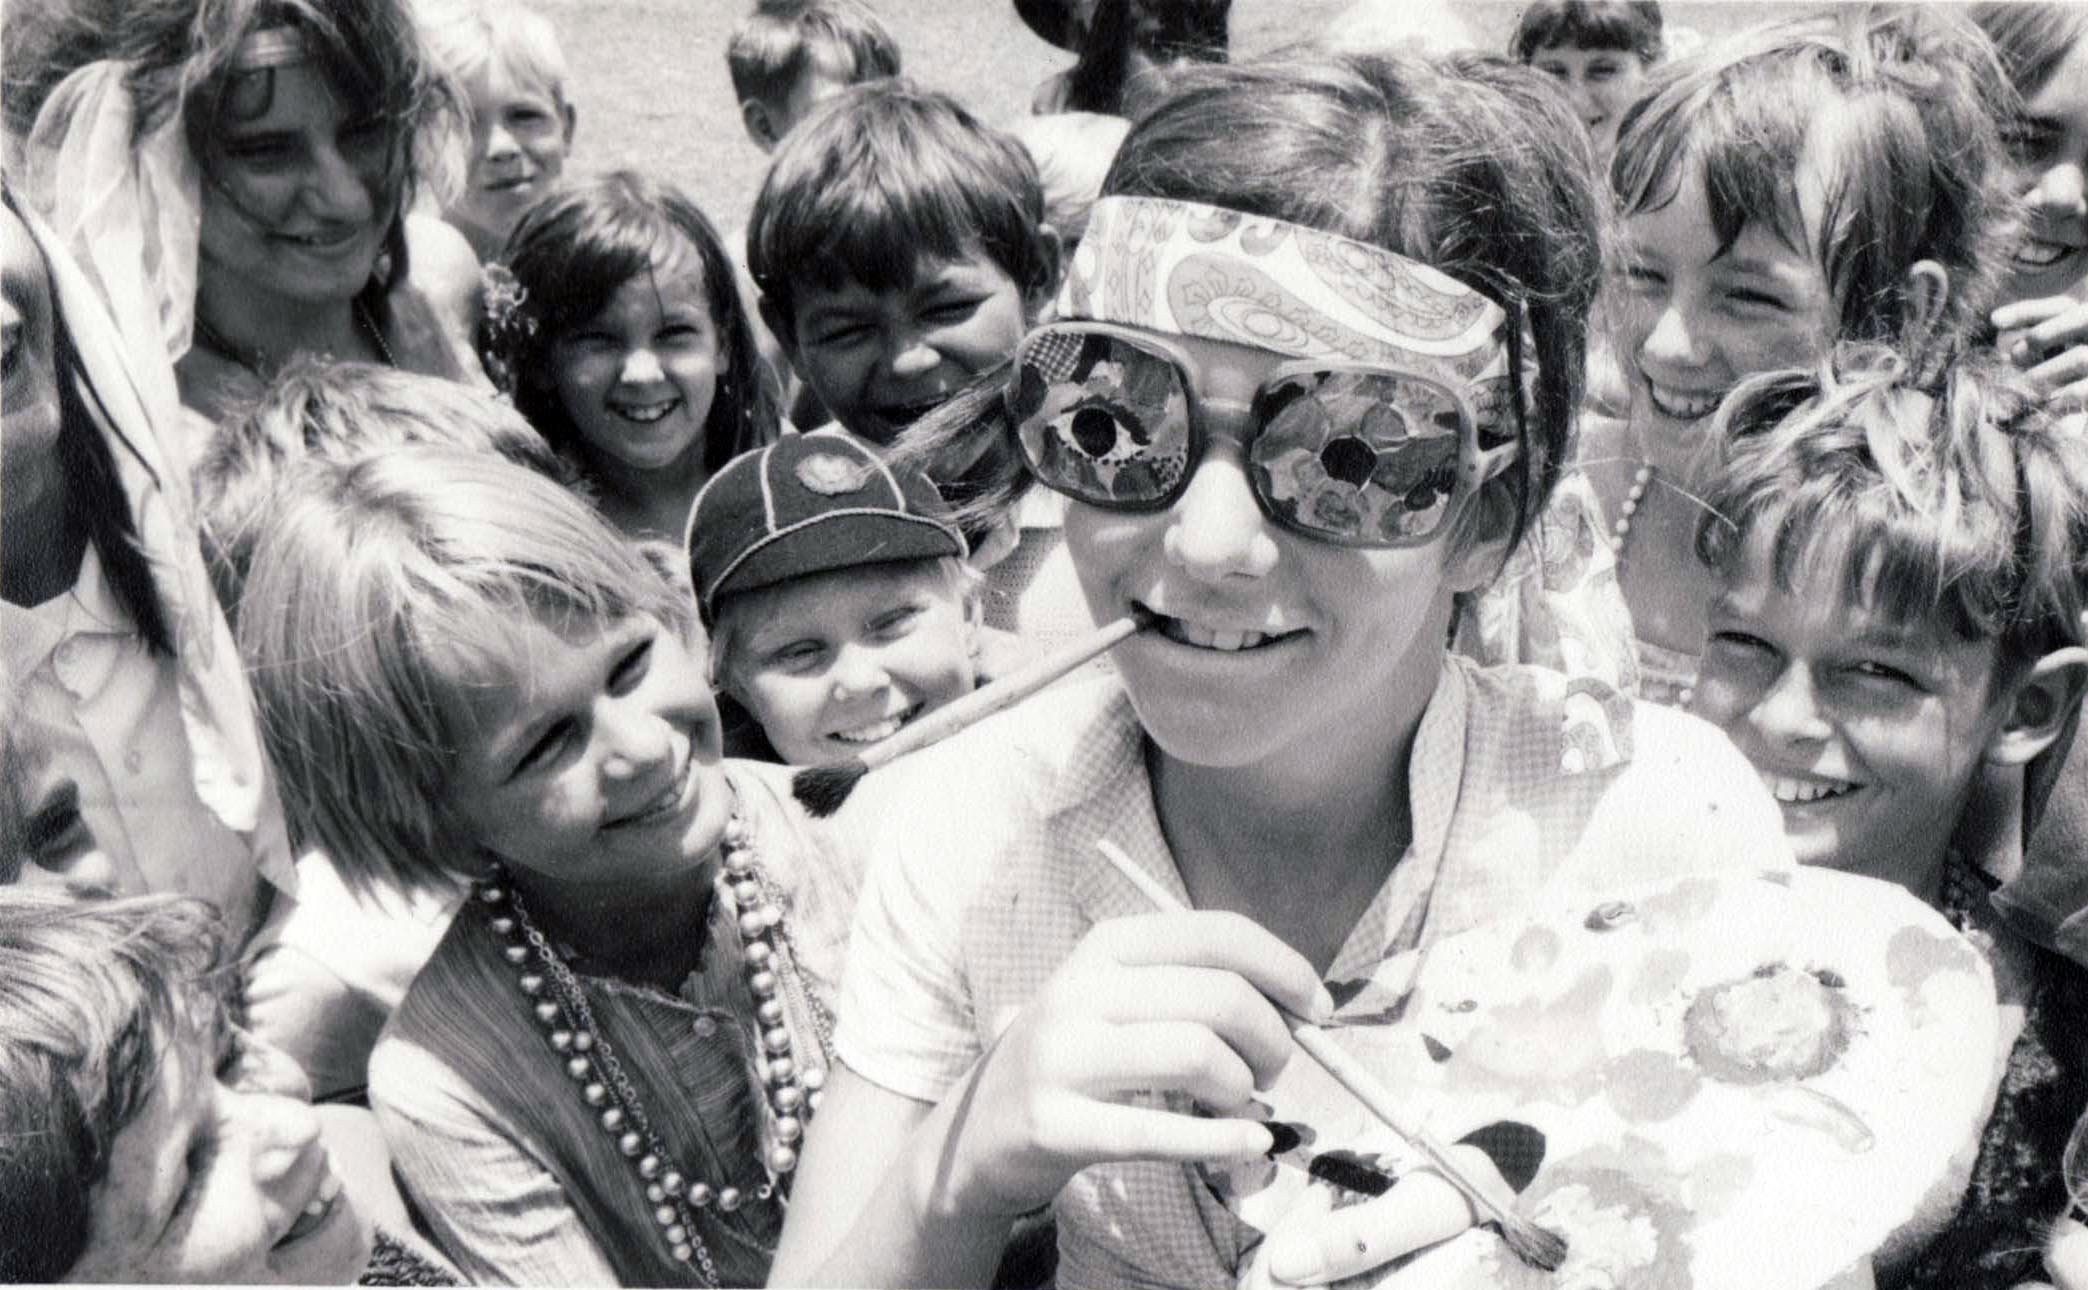 Me on the cover of the Northern Territory News circa 1970